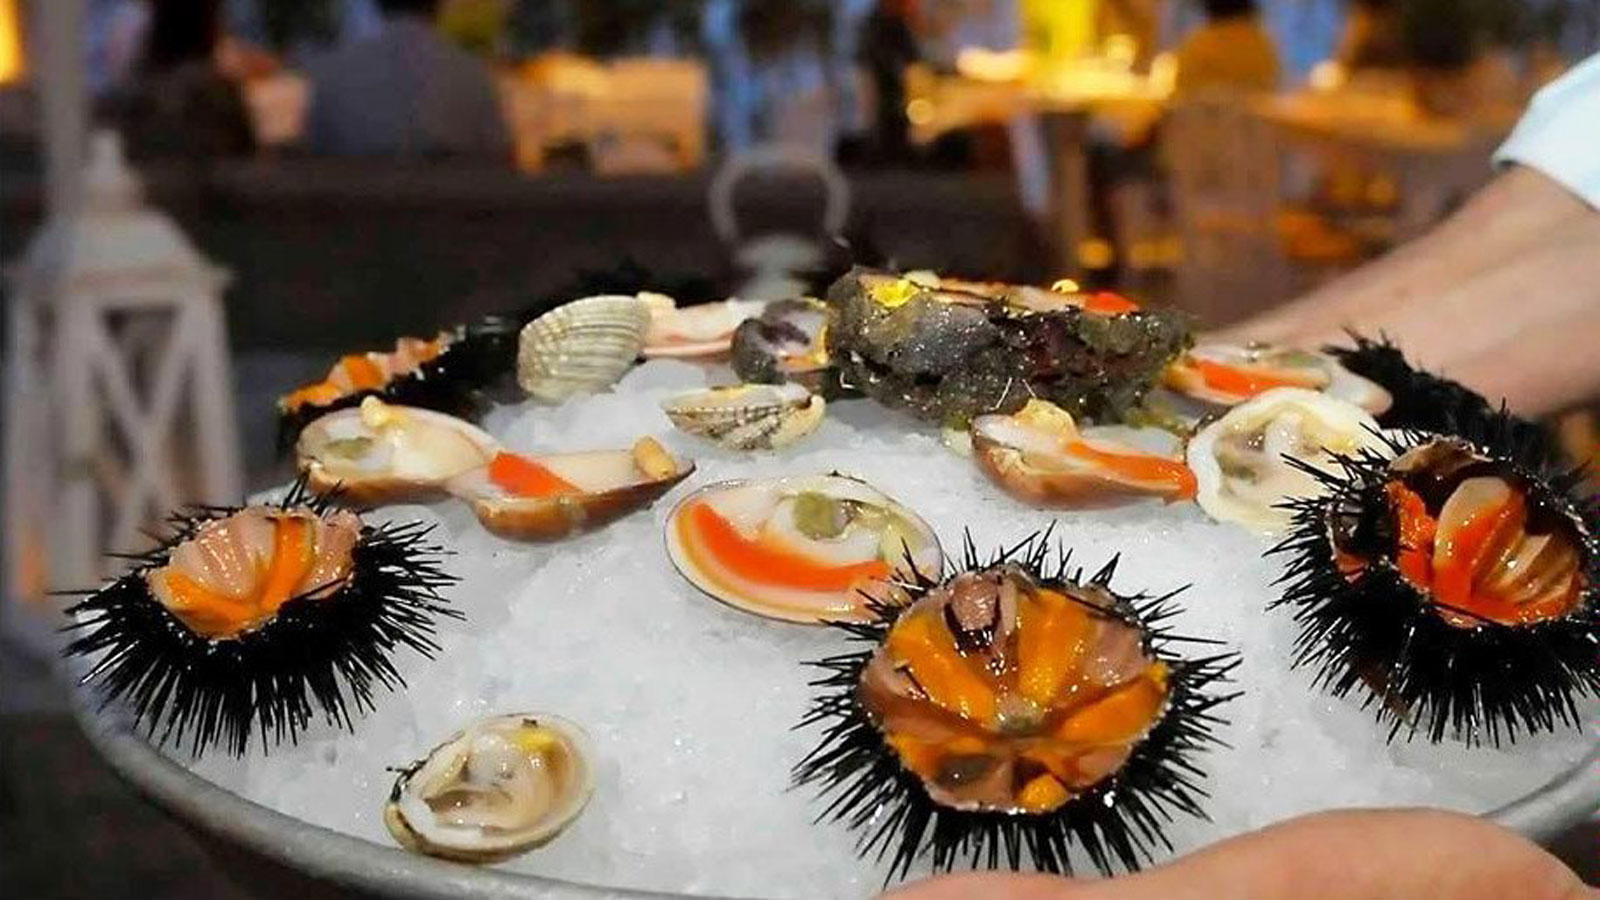 fresh-smooth-clams-cockles-oysters